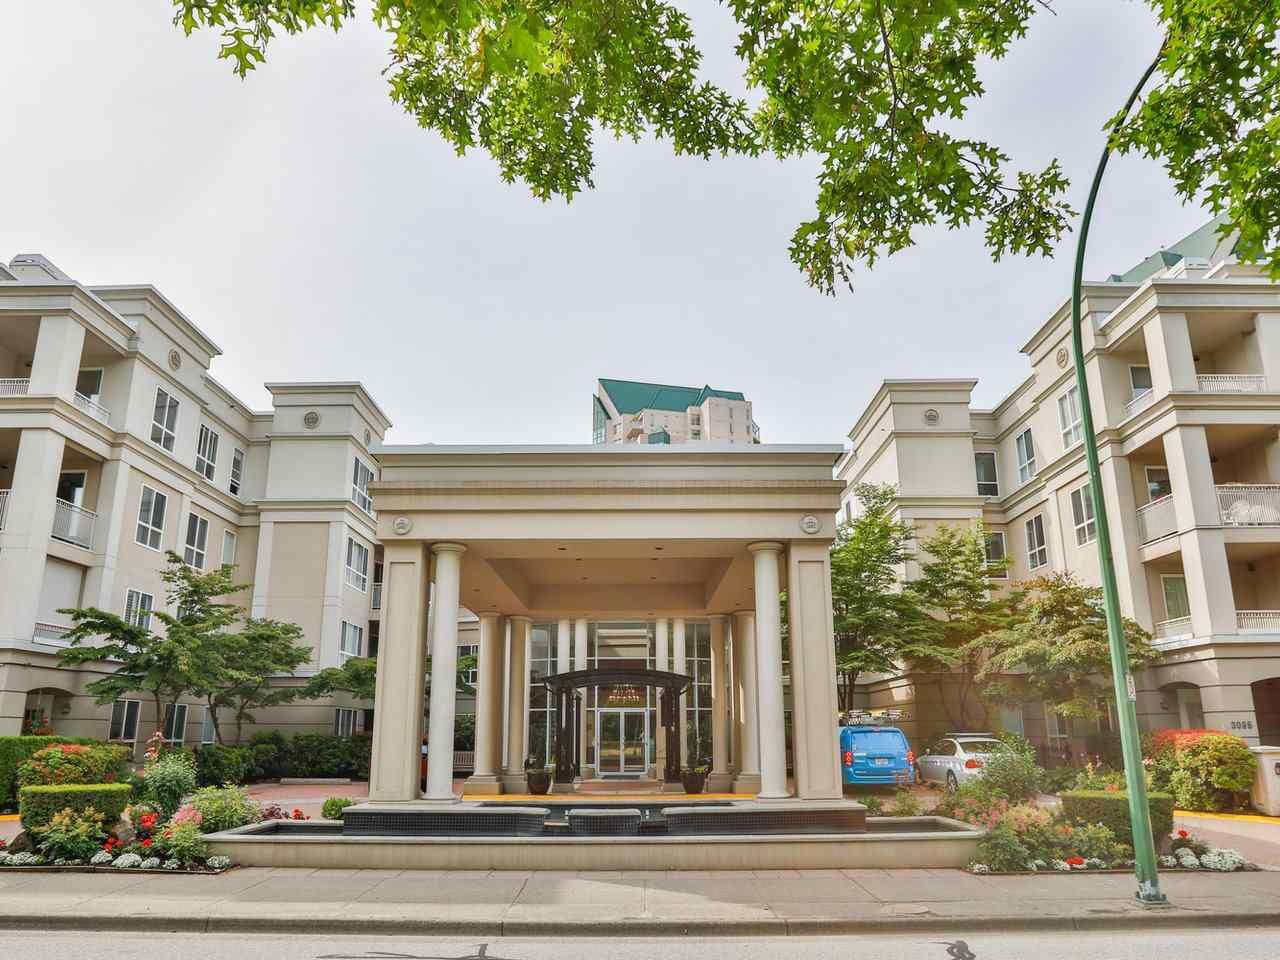 """Main Photo: 425 3098 GUILDFORD Way in Coquitlam: North Coquitlam Condo for sale in """"Marlborough House"""" : MLS®# R2386006"""